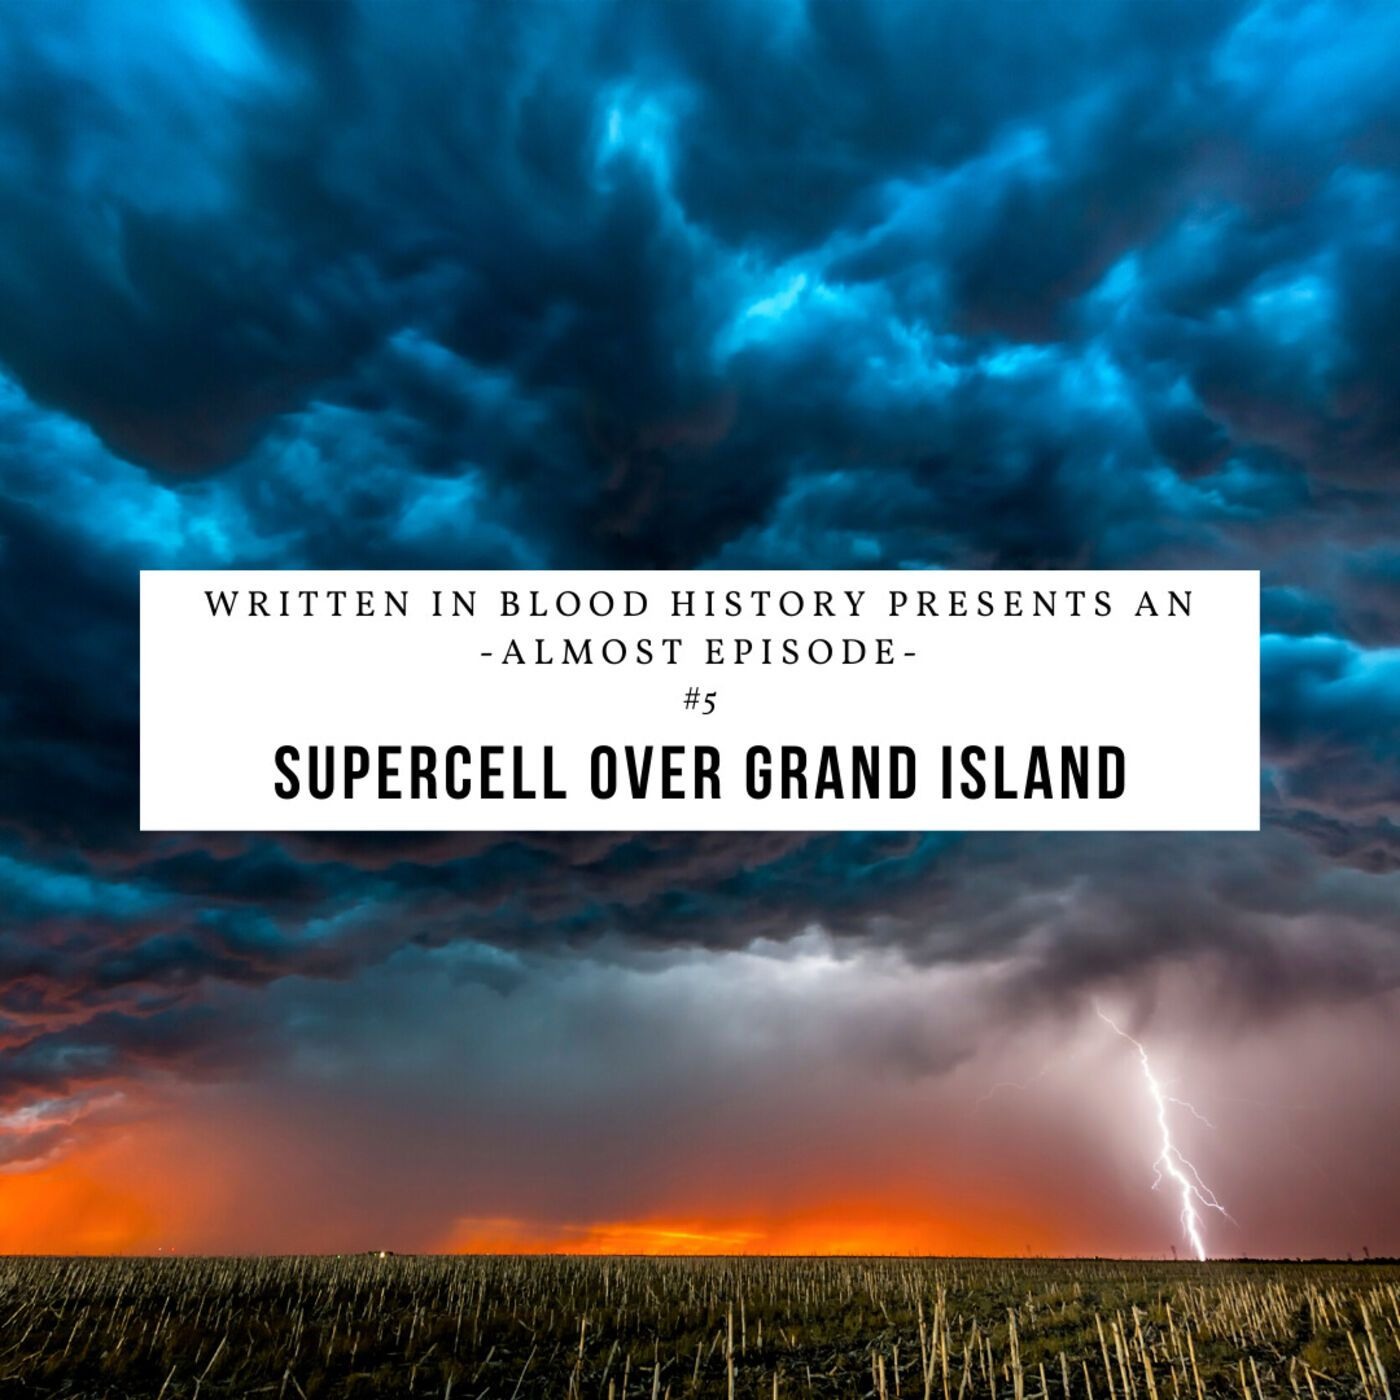 Almost Episode: Supercell Over Grand Island